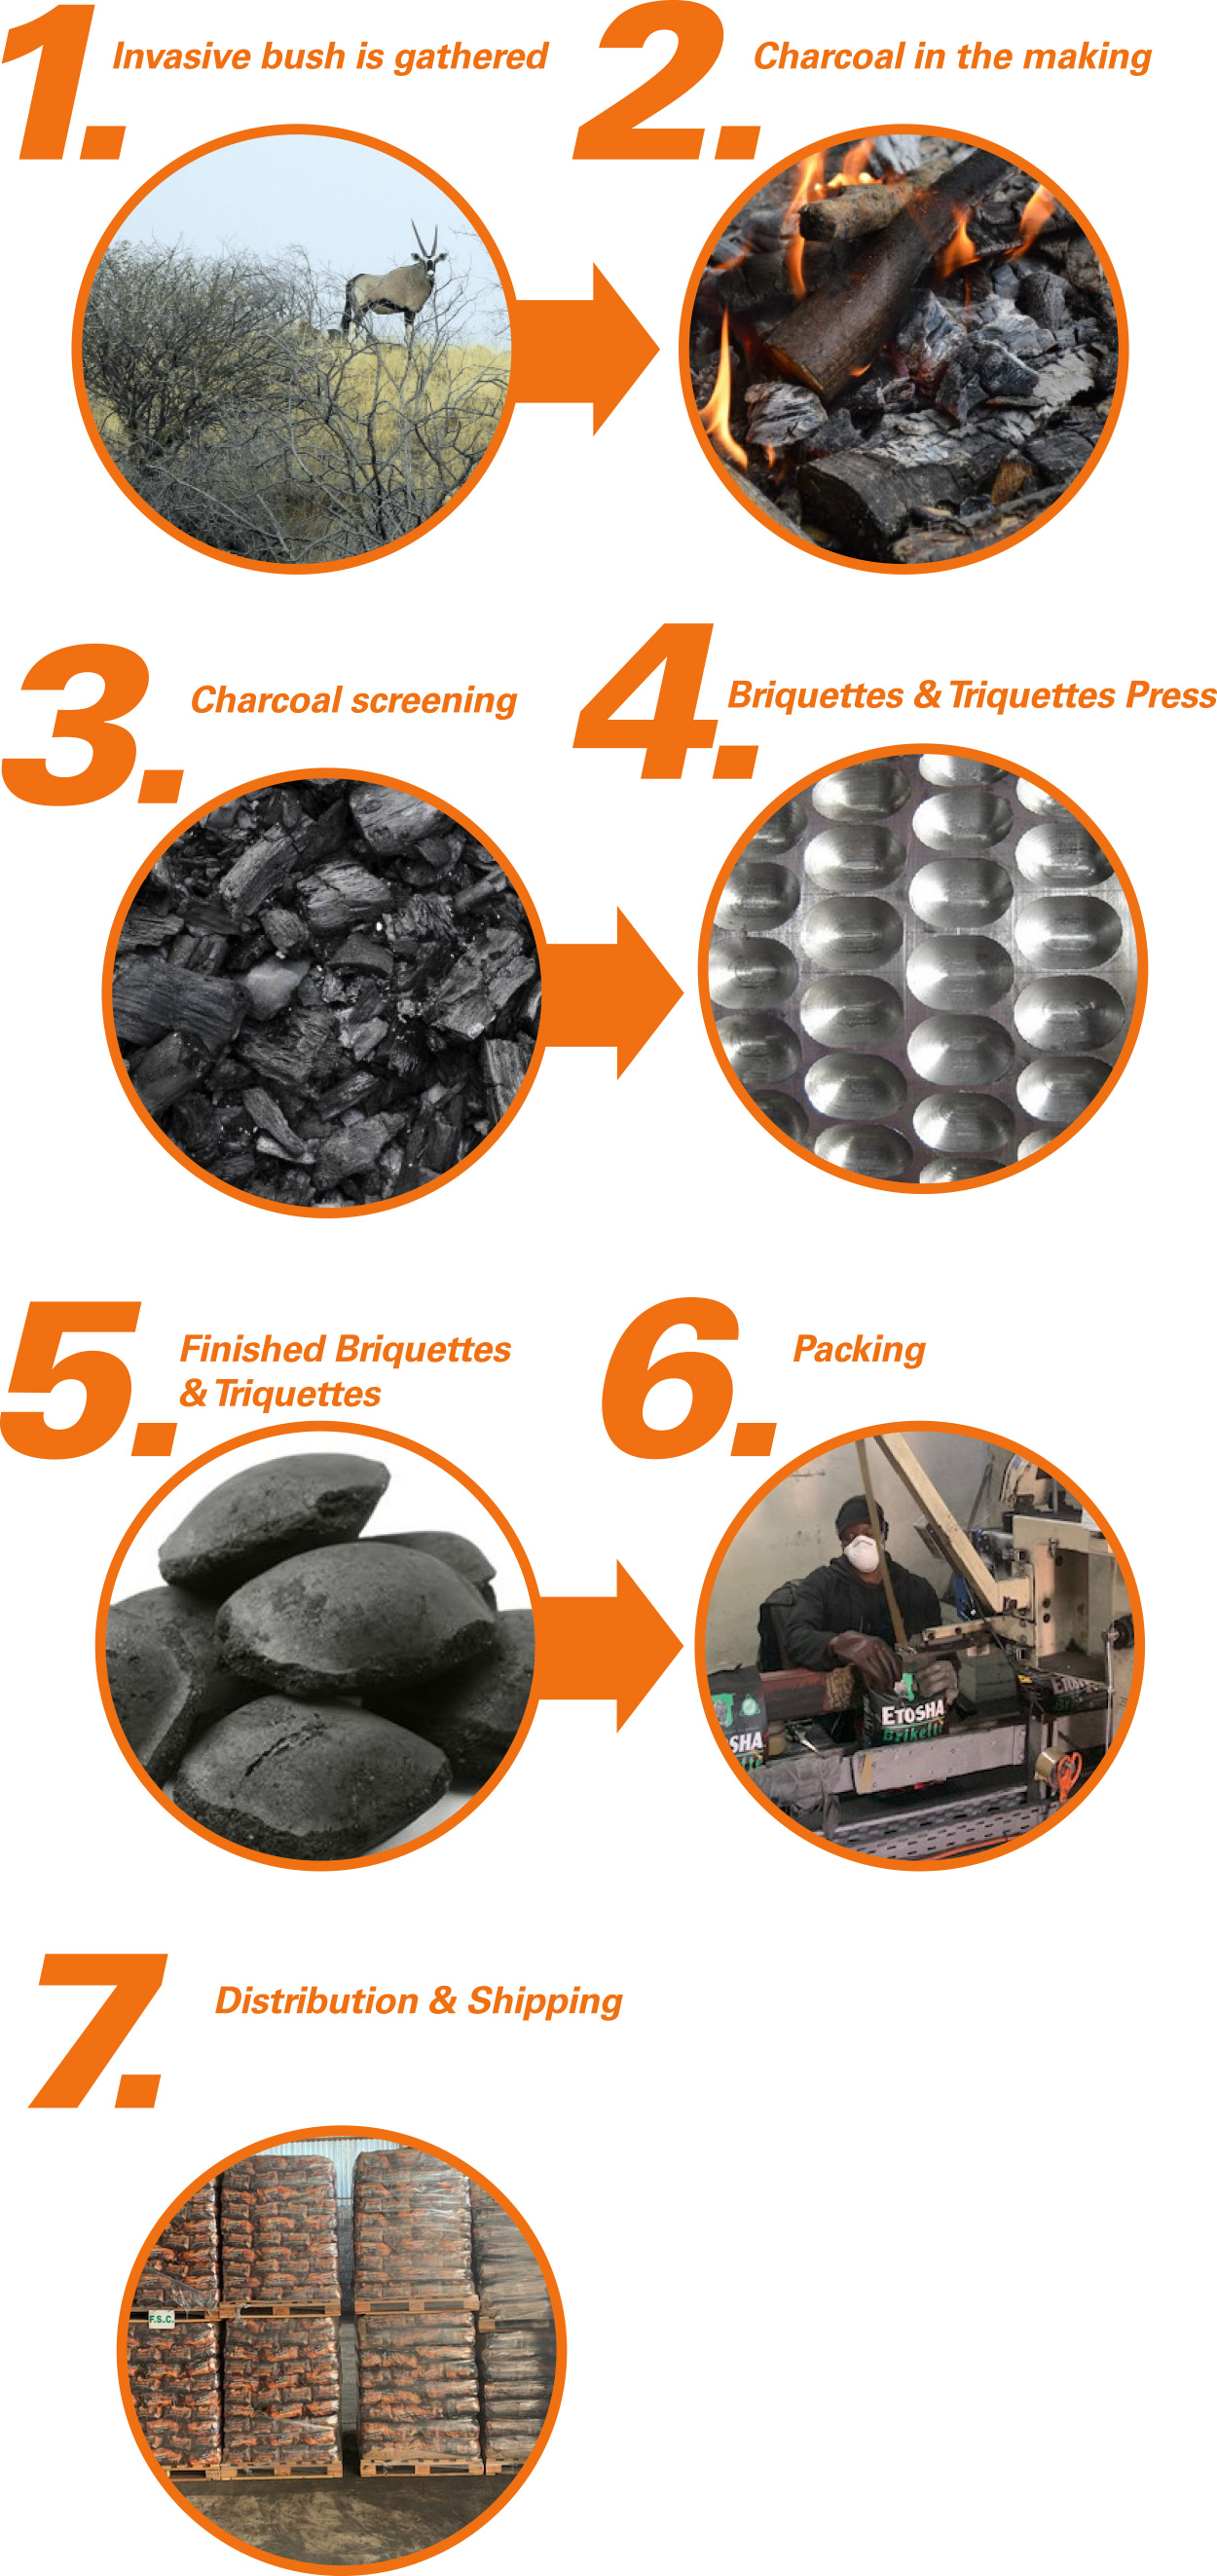 The 7 steps involved in manufacturing our charcoal